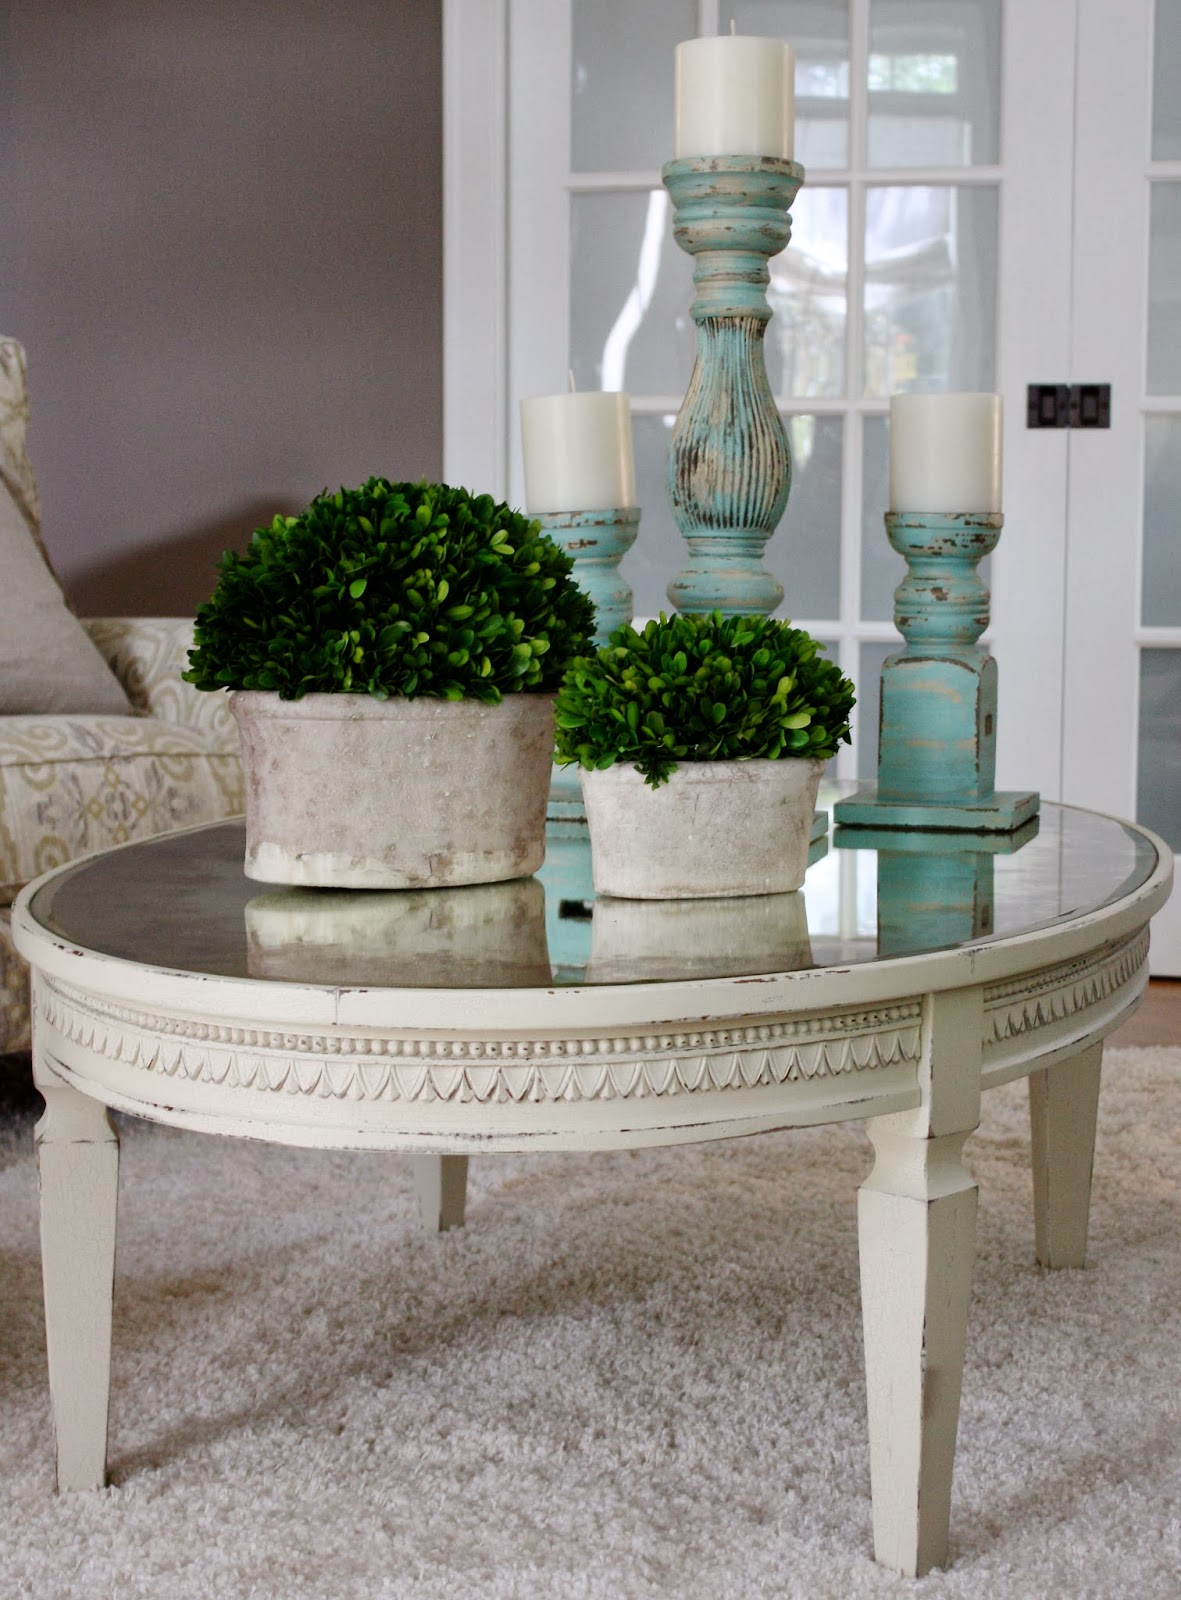 Ideal How To Match a Potterybarn Distressed Finish